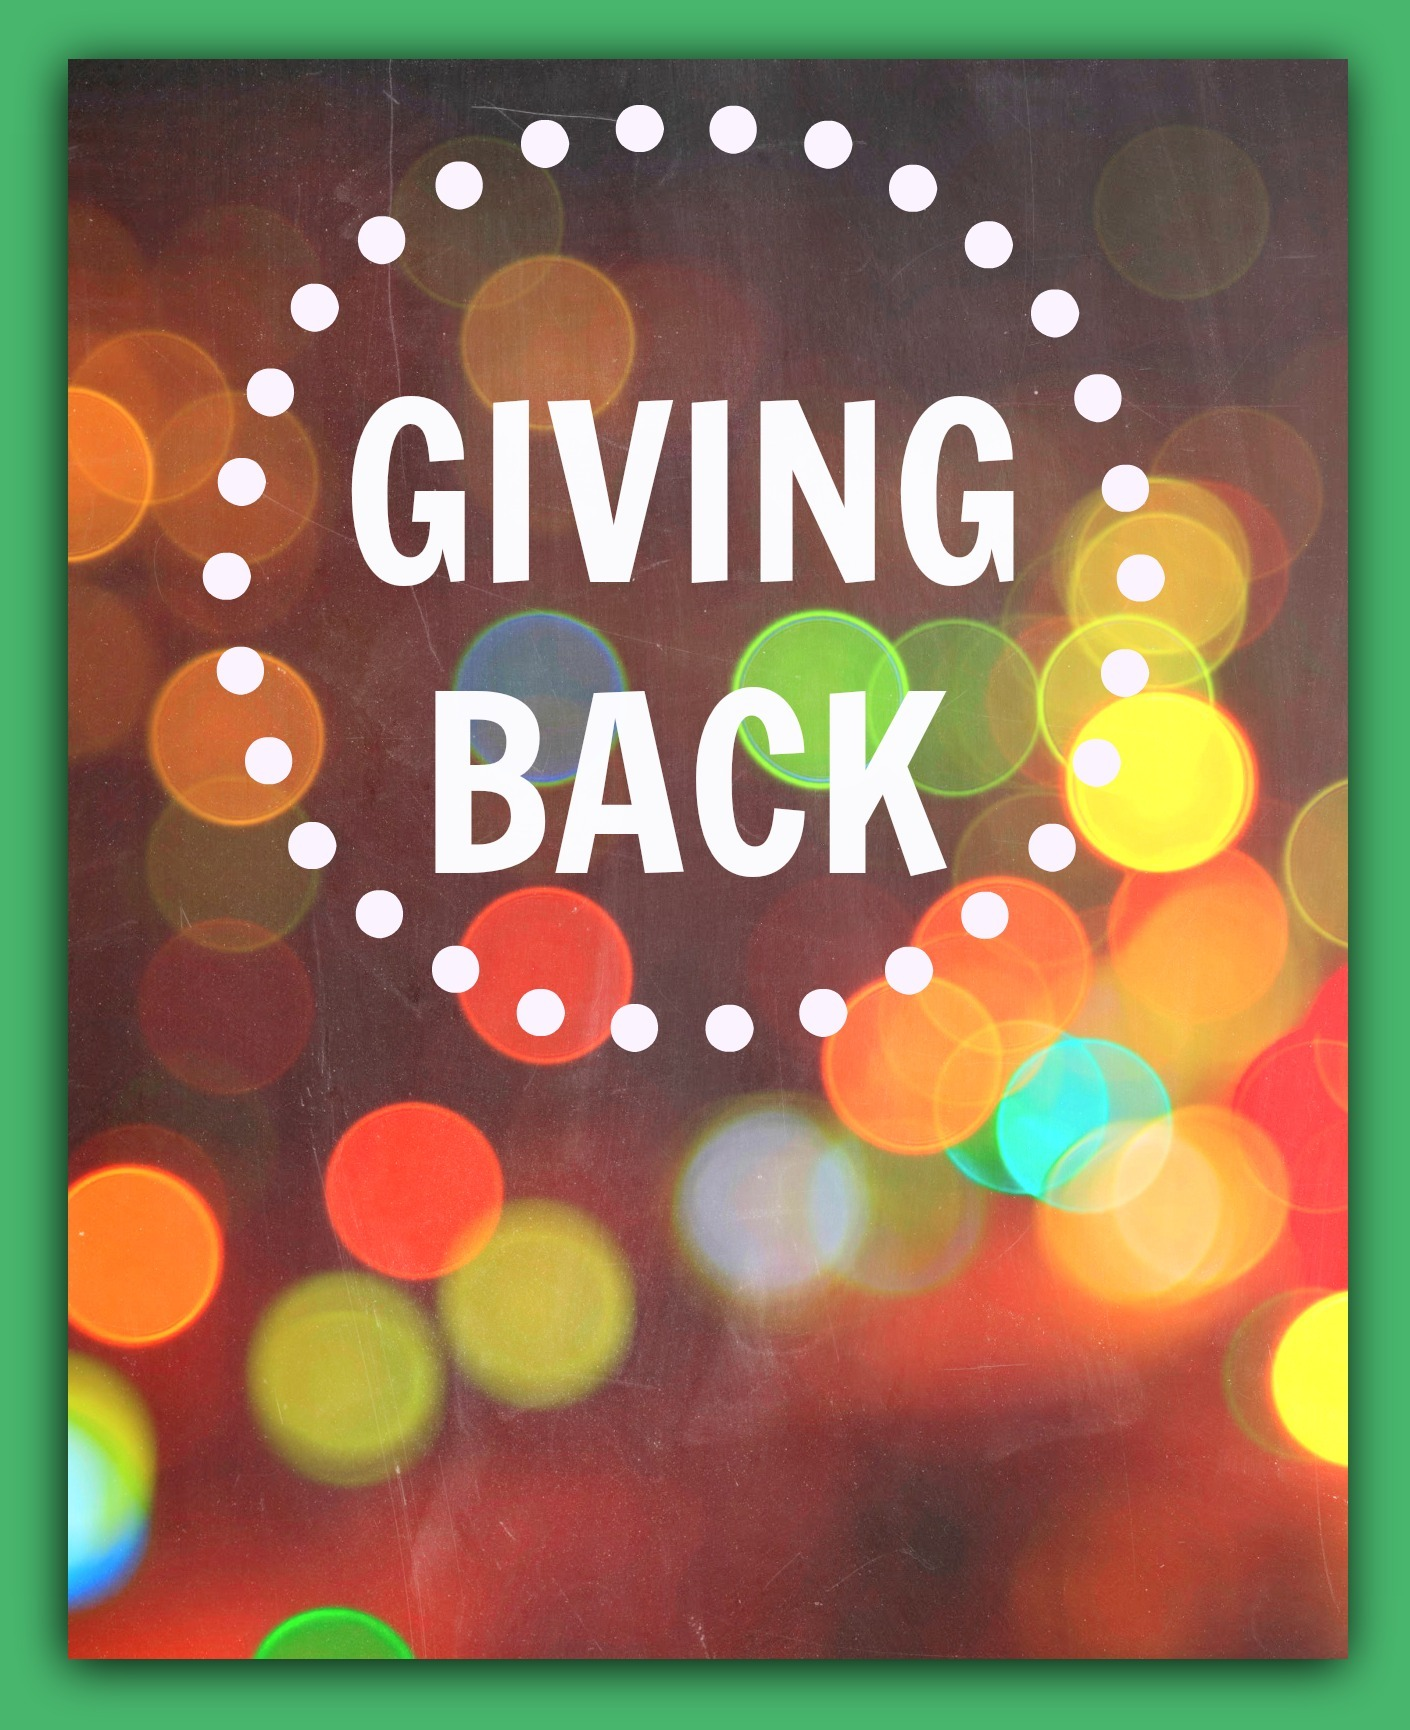 b41e5075b82c31750a16_GIVING-BACK.jpg